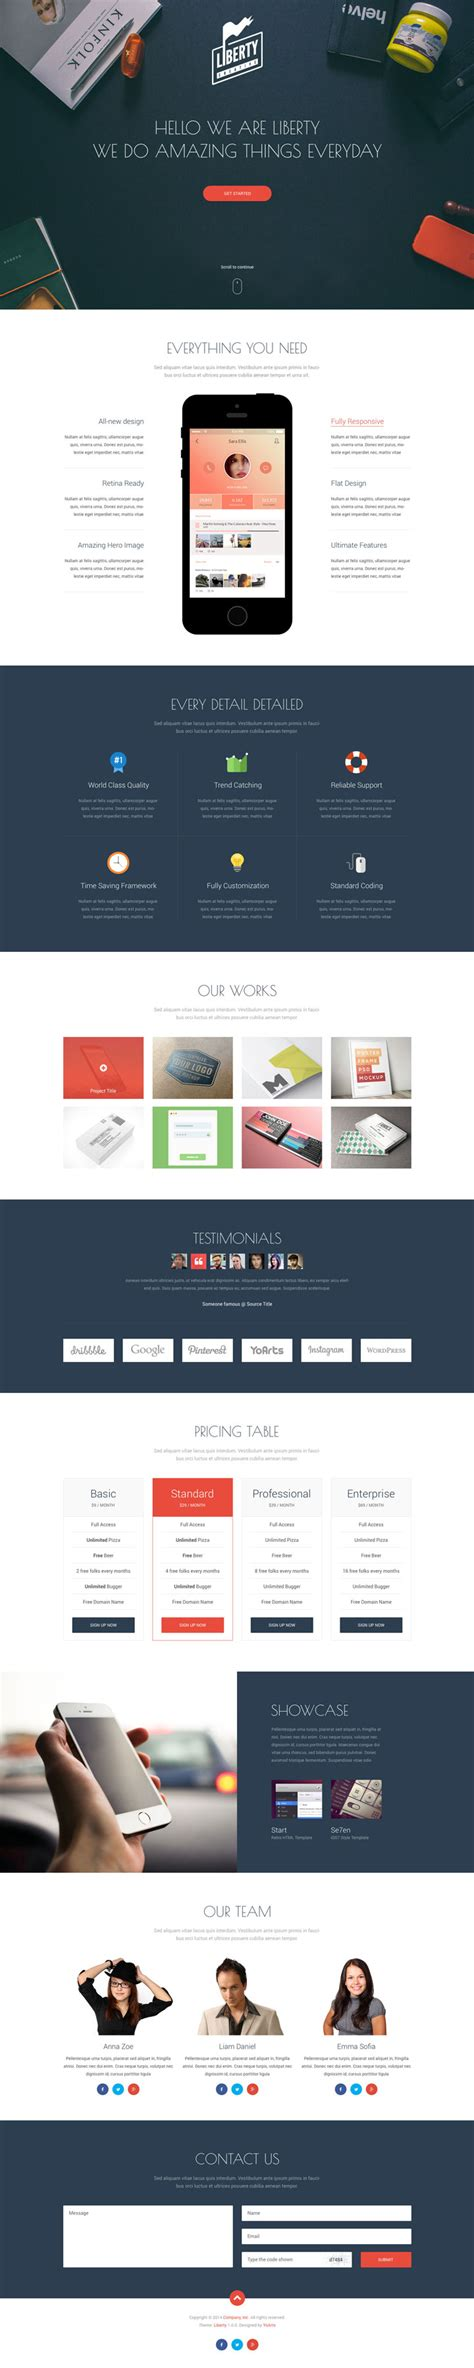 blank template html5 1 responsive one page responsive html5 web template creative alys